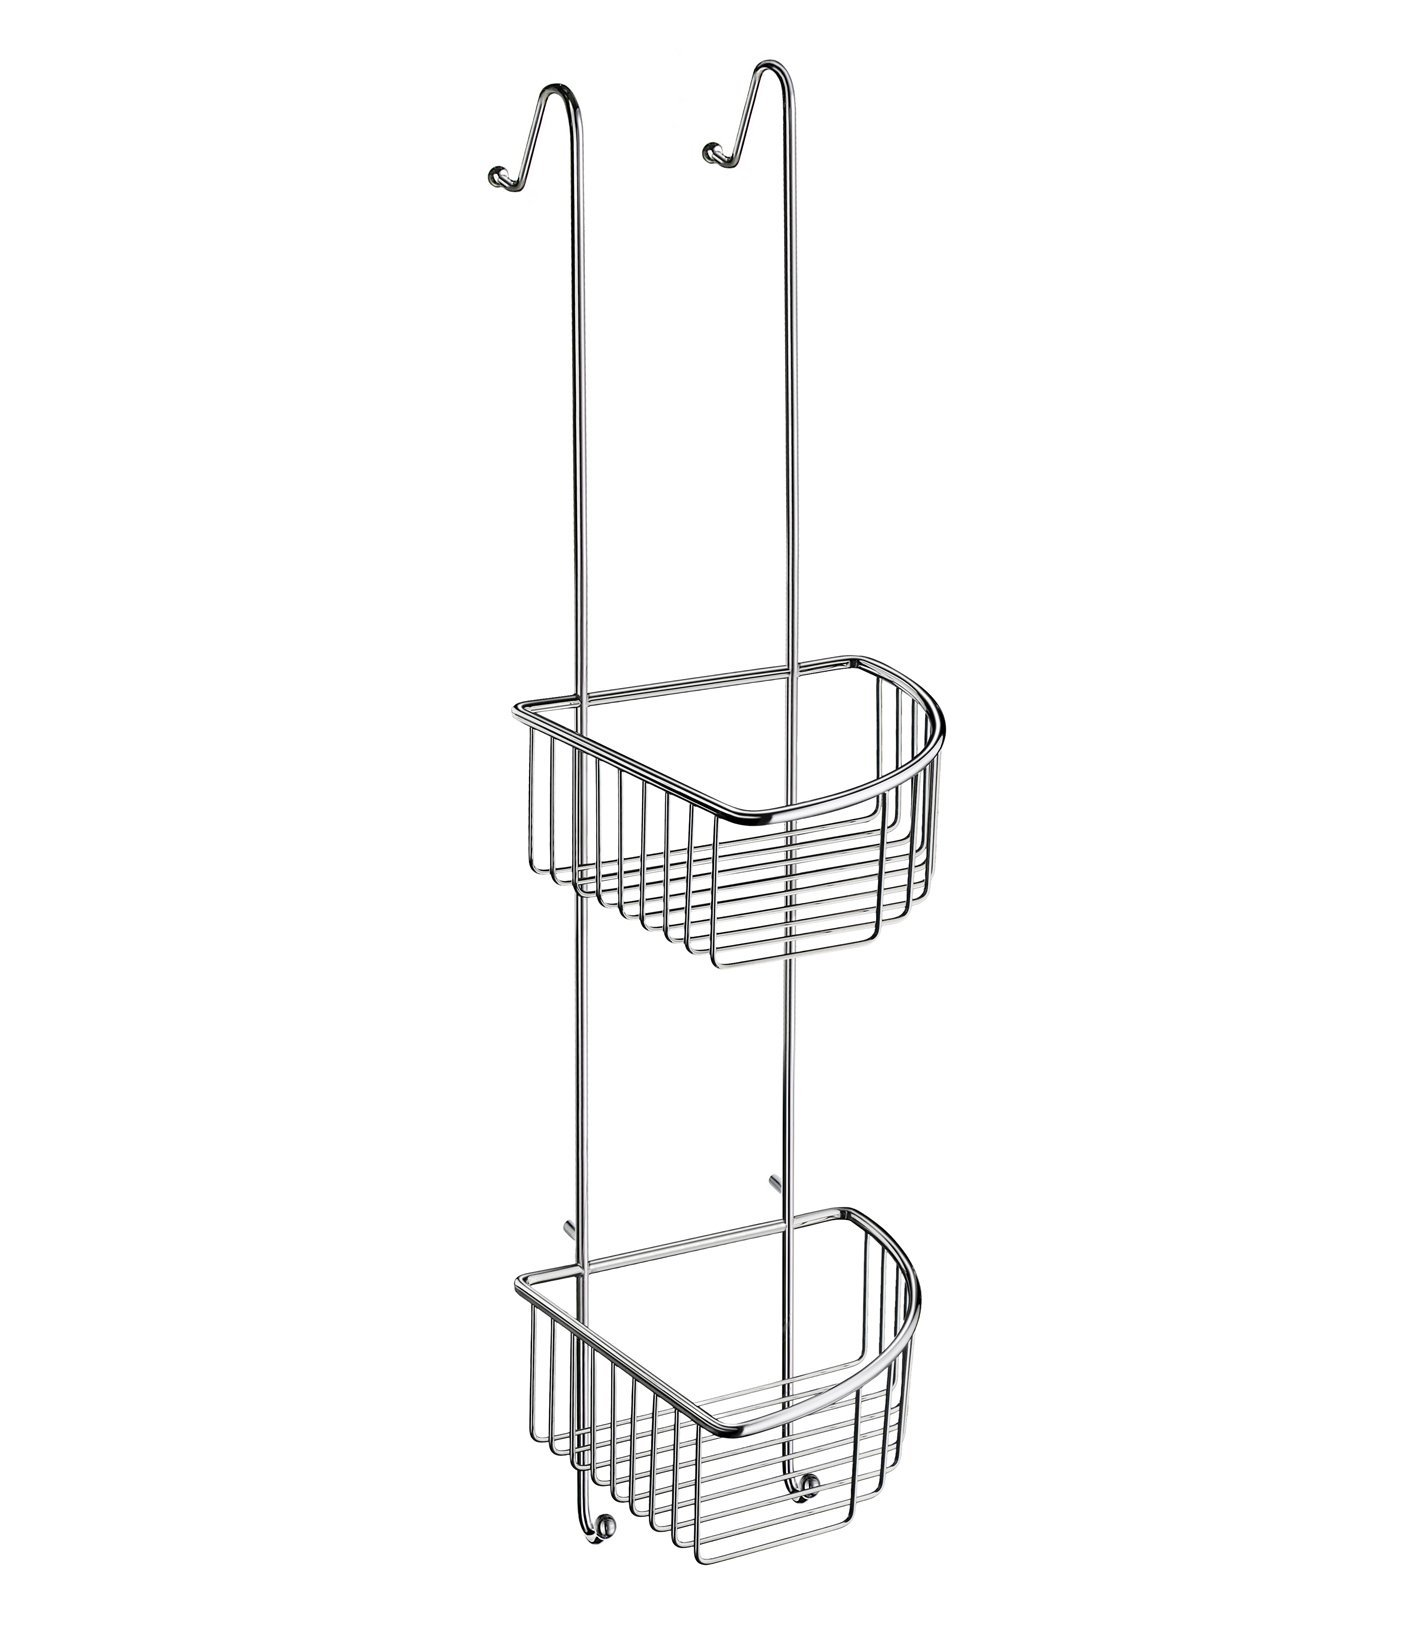 Smedbo SME_DK1042 Shower Basket, Polished Chrome